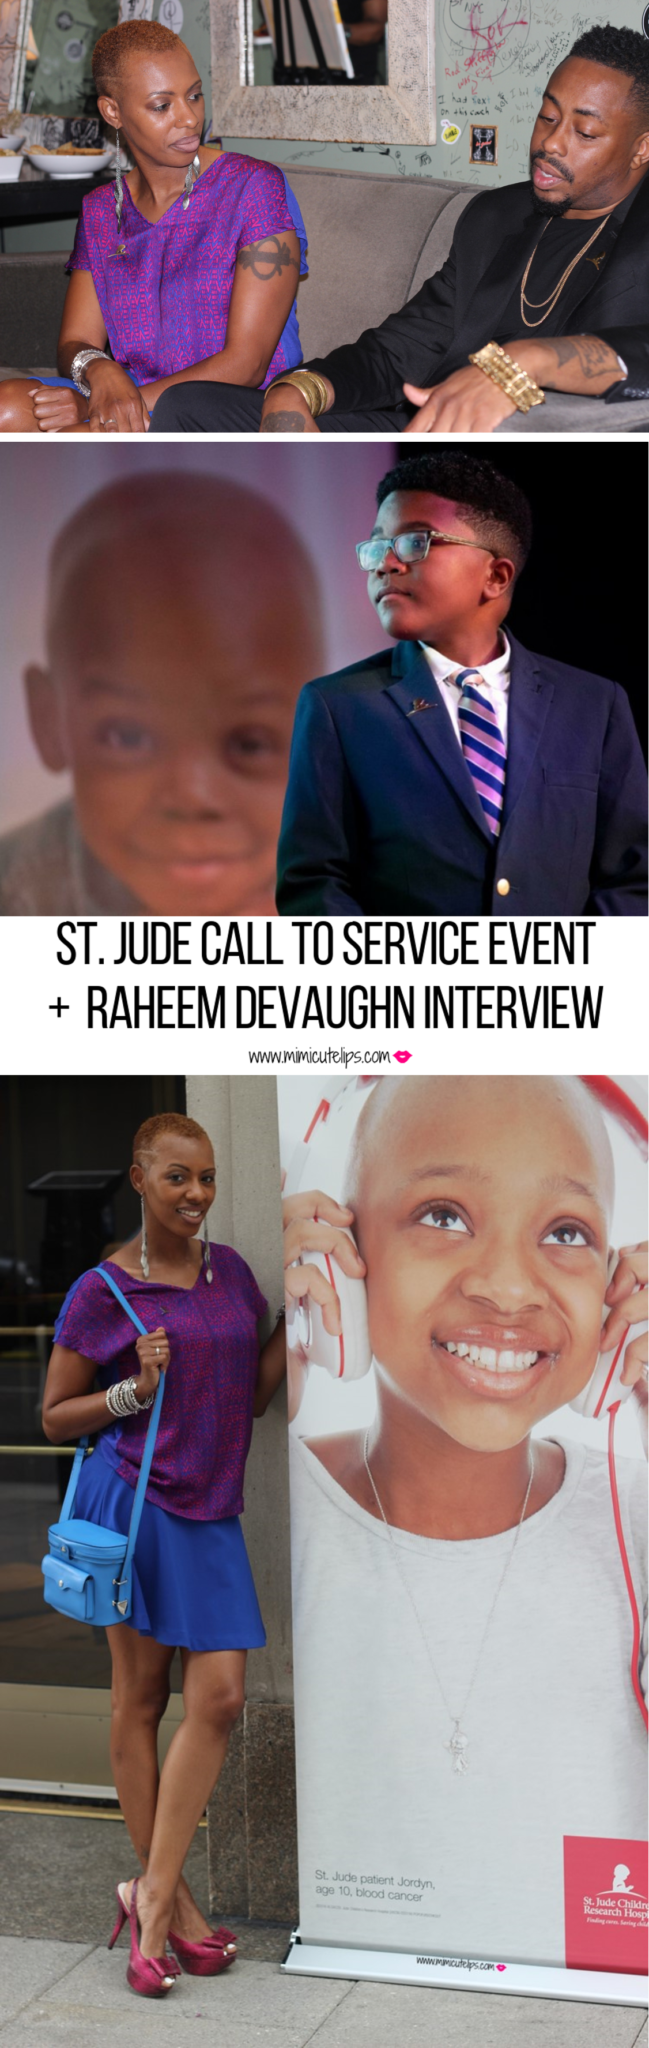 Lifestyle Media Correspondent recaps the St. Jude Call to Service event. The recap includes an interview with Raheem Devaughn. #StJude